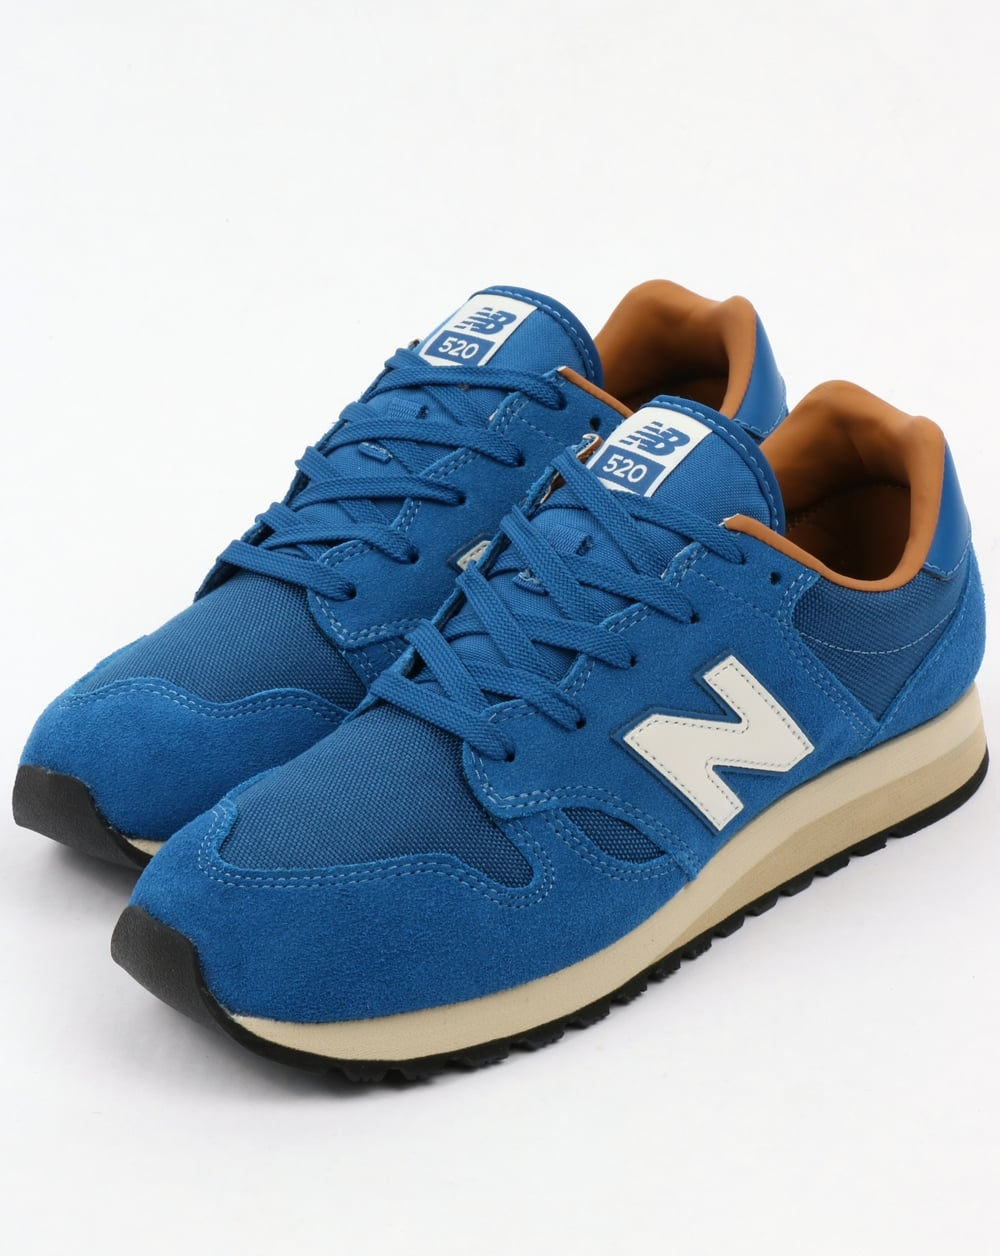 new balance 520 trainers classic blue brown sugar shoes. Black Bedroom Furniture Sets. Home Design Ideas